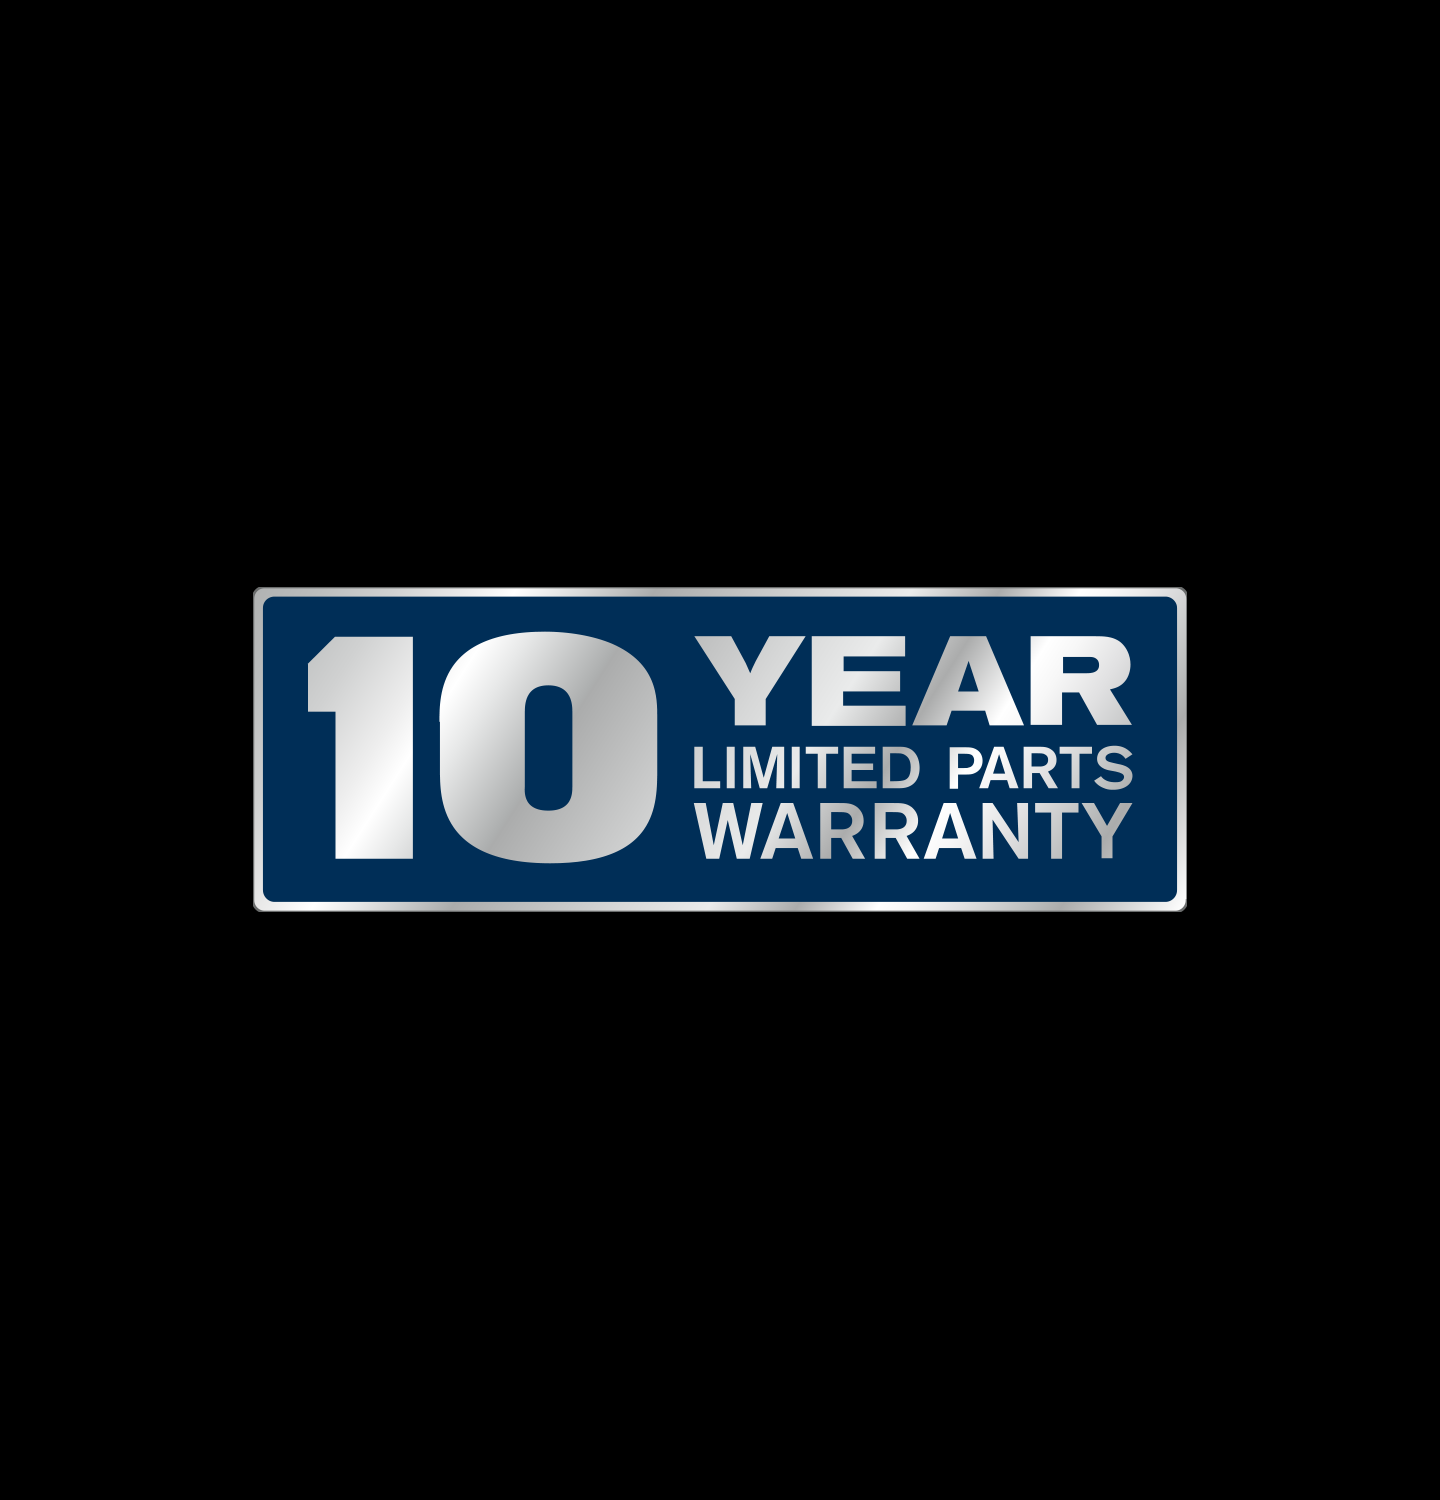 Our dependable appliances come with a reliable 10-year warranty.